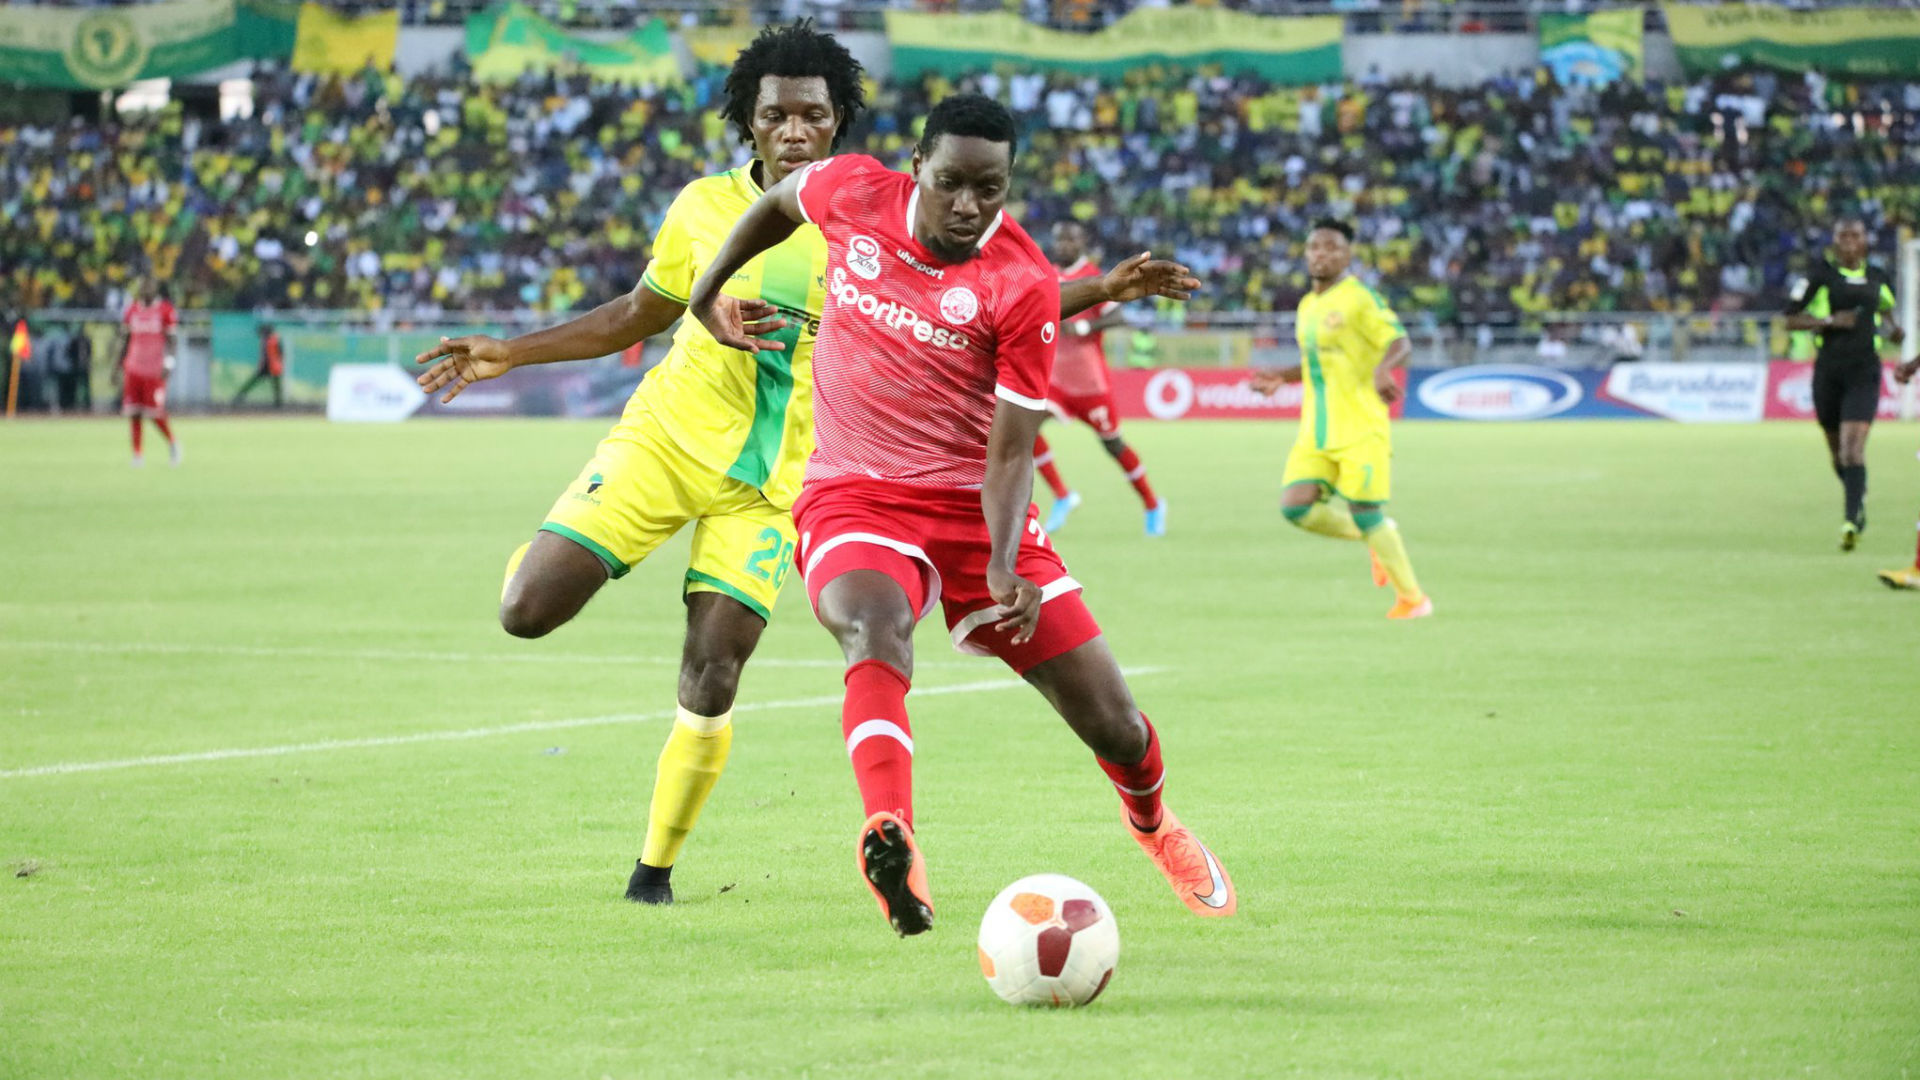 Simba, Yanga hunt glories